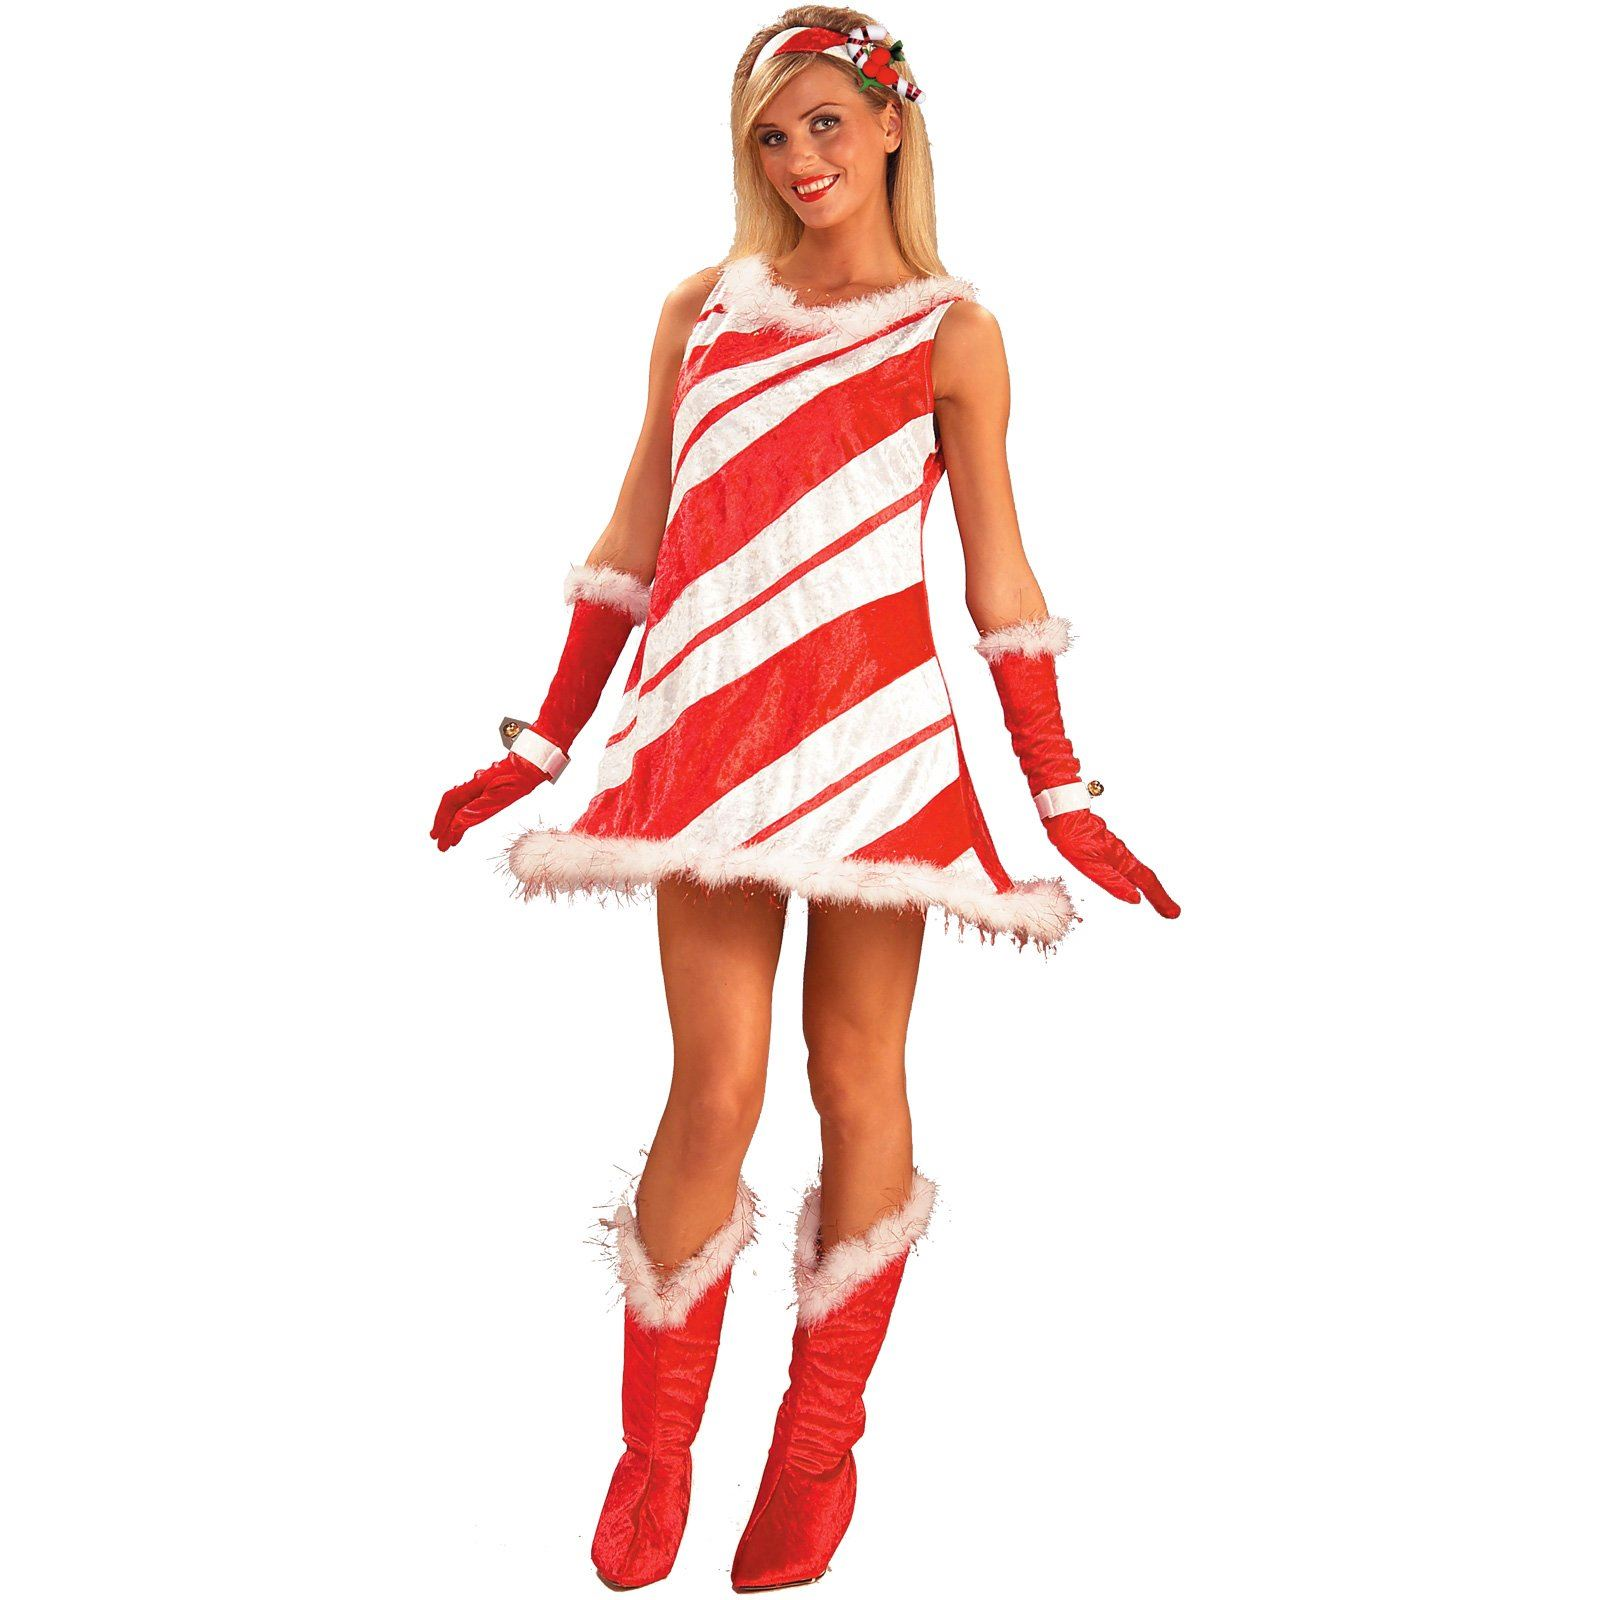 Miss candy cane woman halloween costume 33 99 the costume land